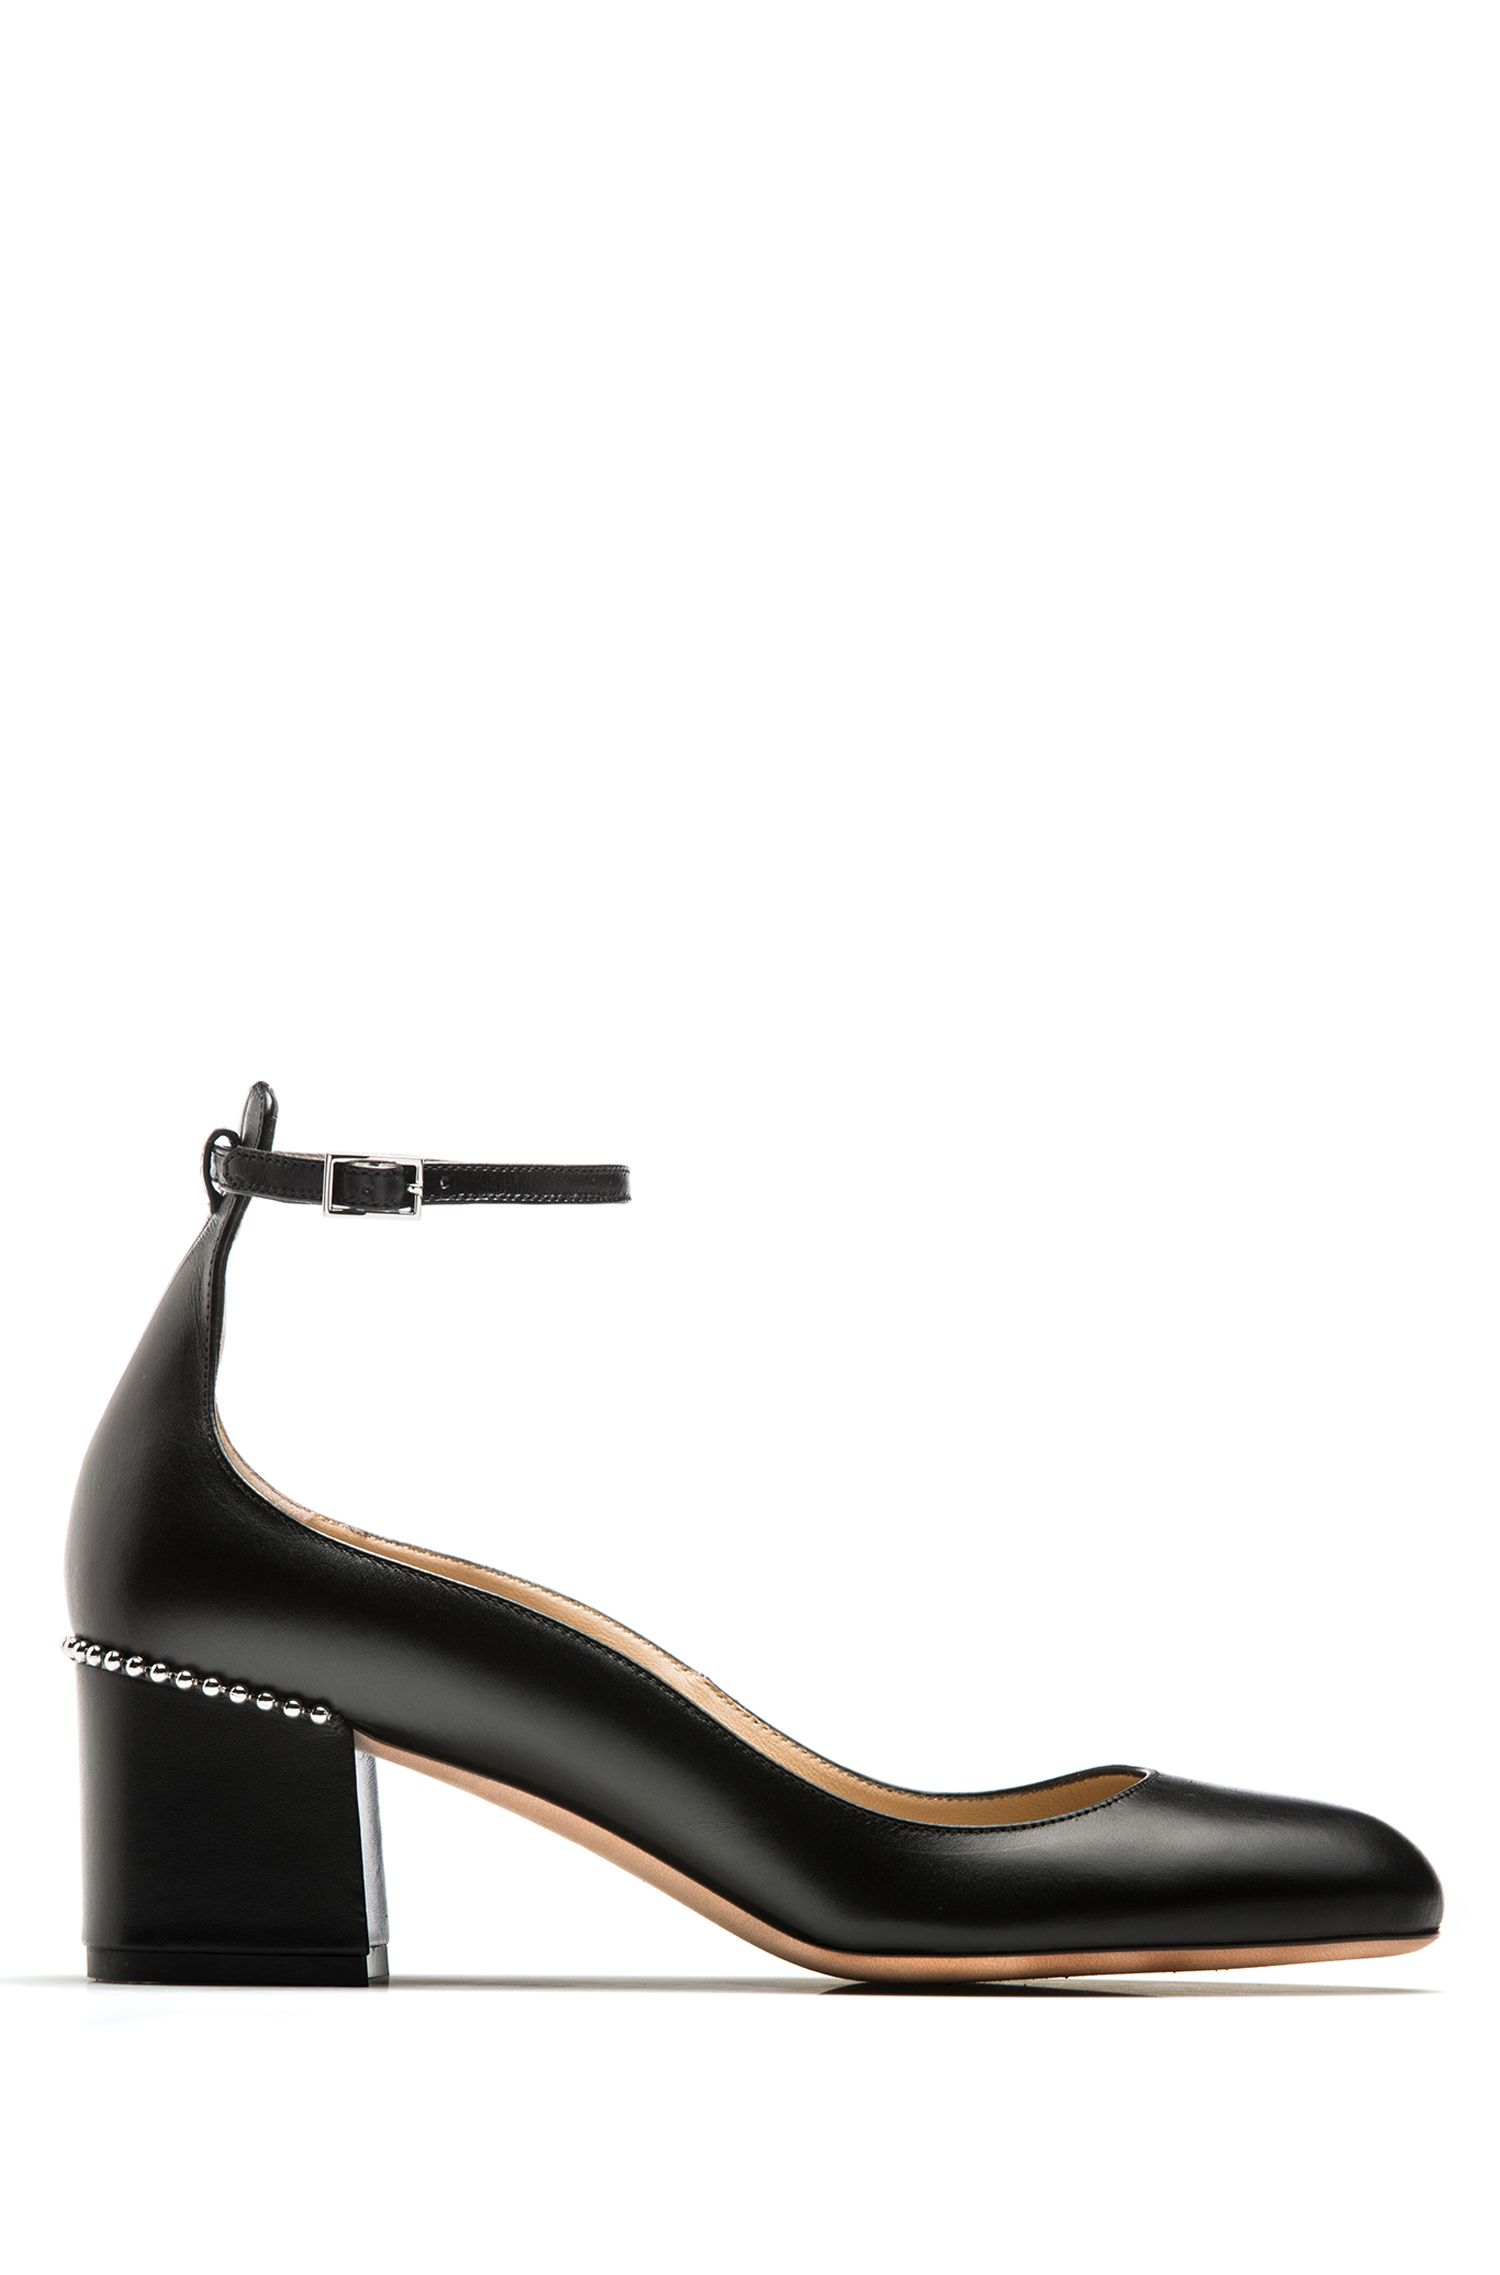 Calf-leather pumps with ankle strap and studs, Black